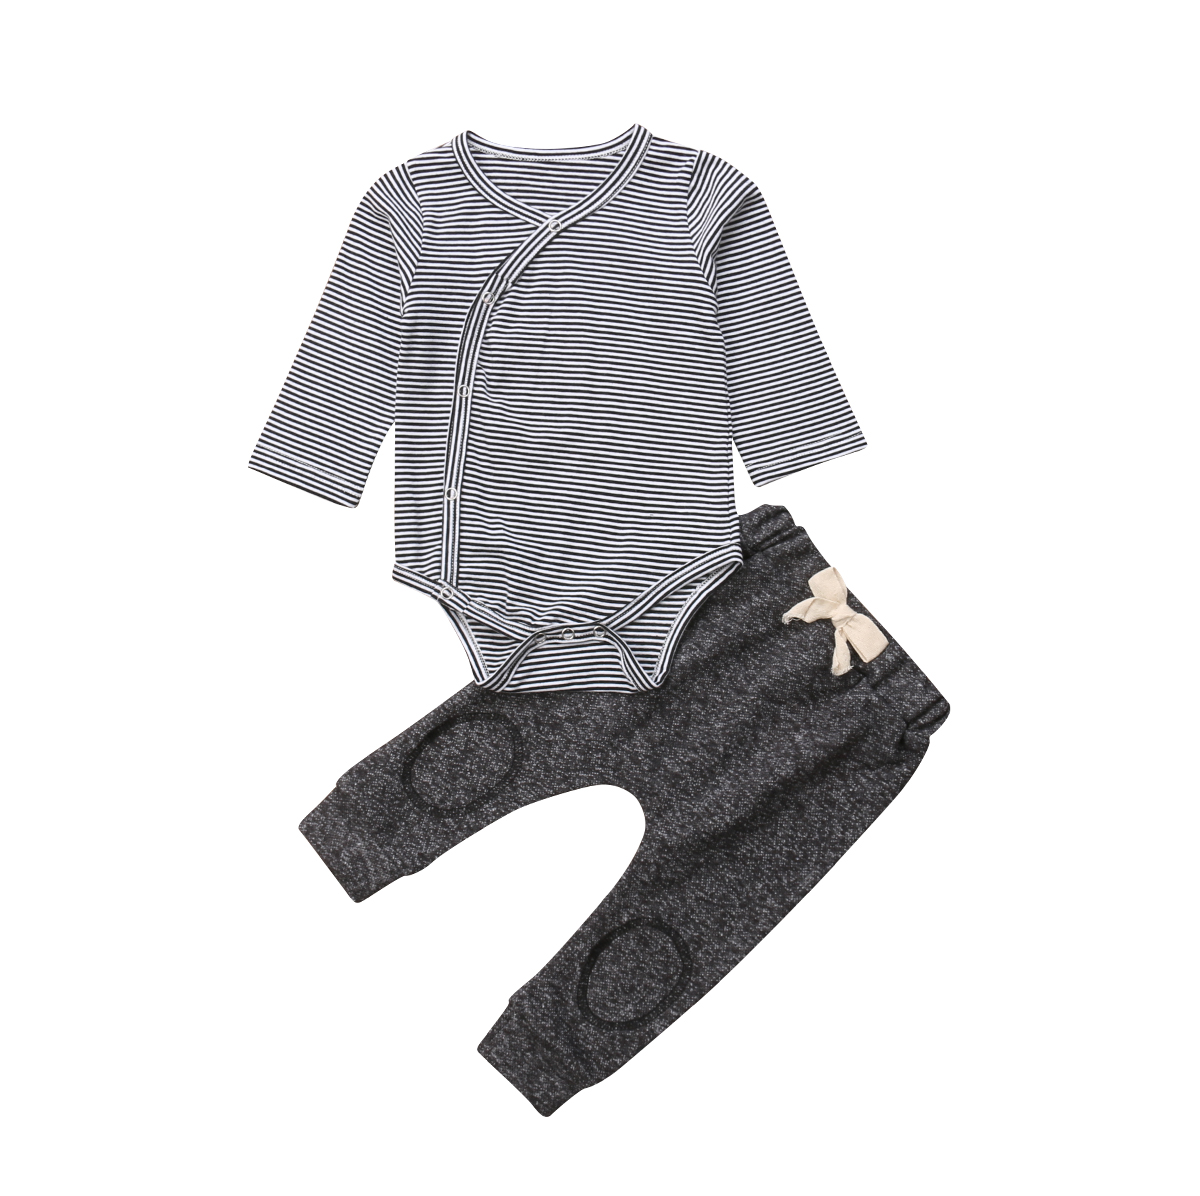 Newborn Kids Baby Boys Clothing Tops Romper Stripe Long Sleeve Pants Cotton Casual Striped 2Pcs Set Clothes Sets Baby Boys 0-24M newborn baby boys clothing sets baby girls clothes cartoon aircraft blue whale short sleeve infant cotton underwear 2pcs set